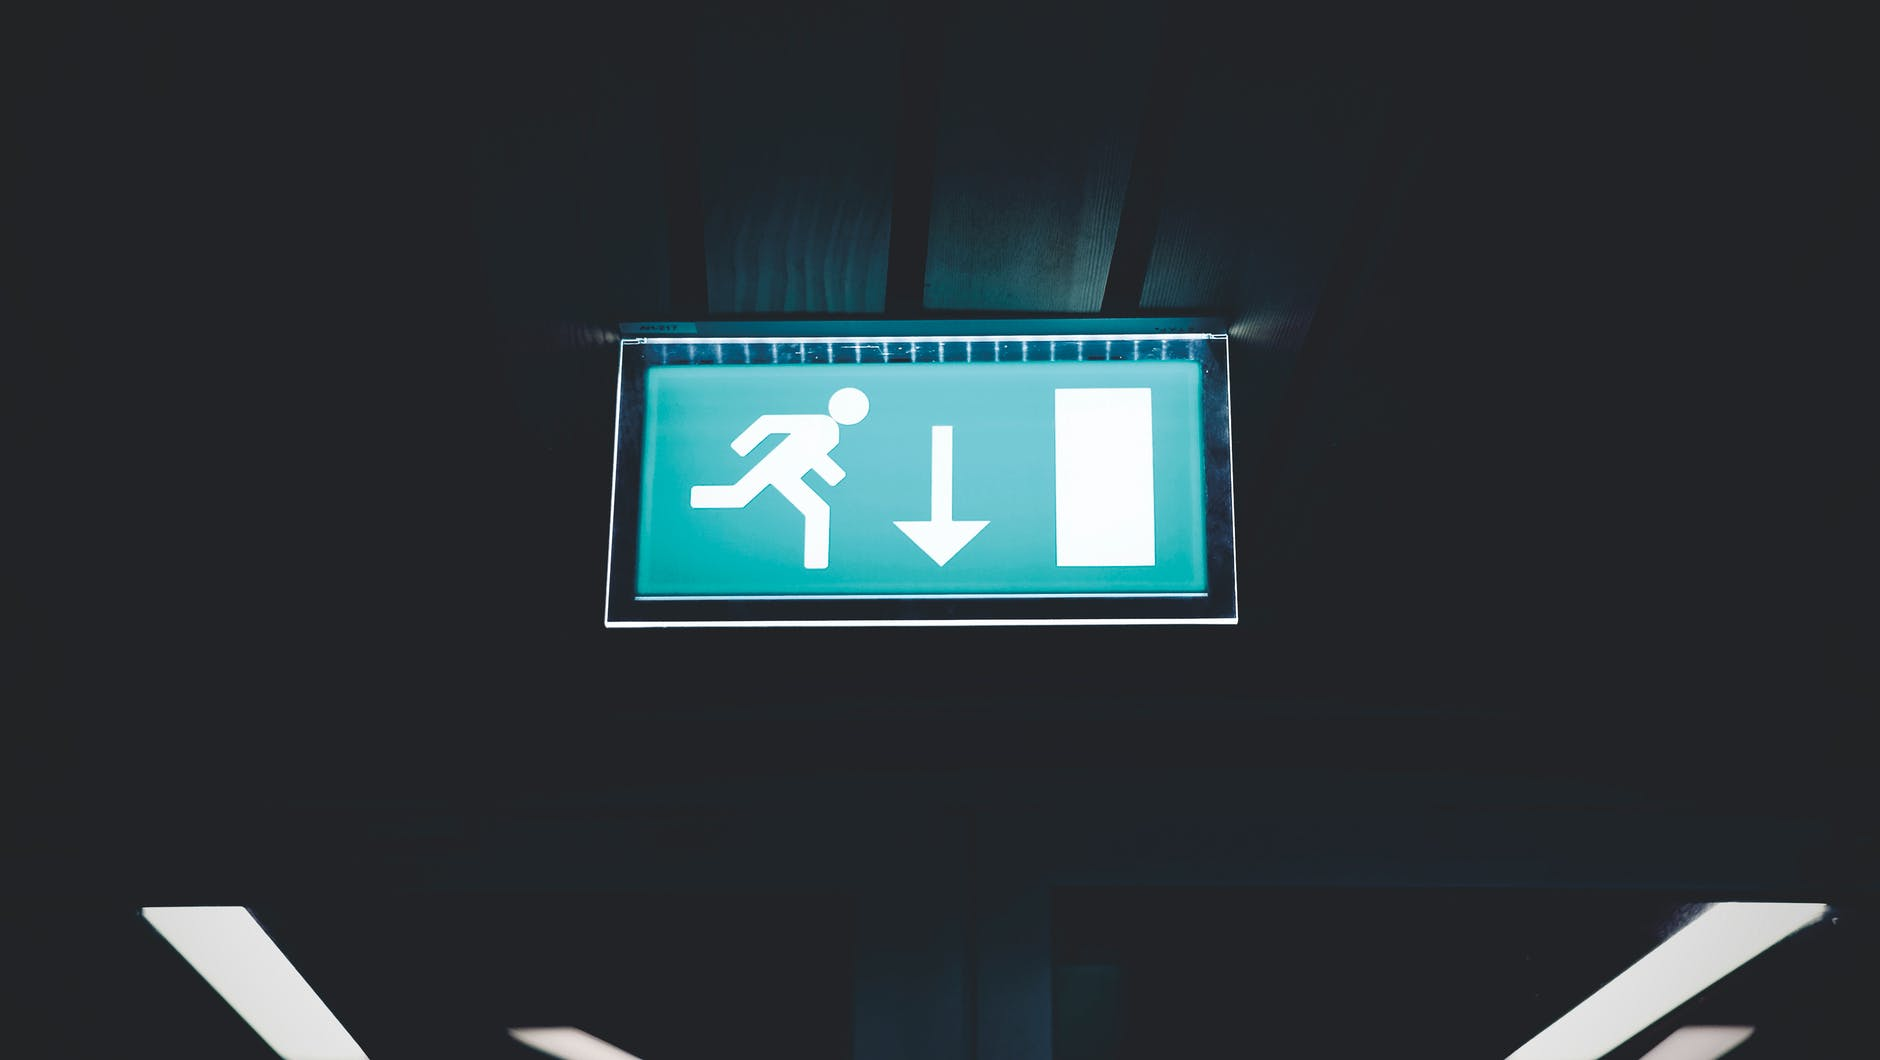 service emergency exit lighting